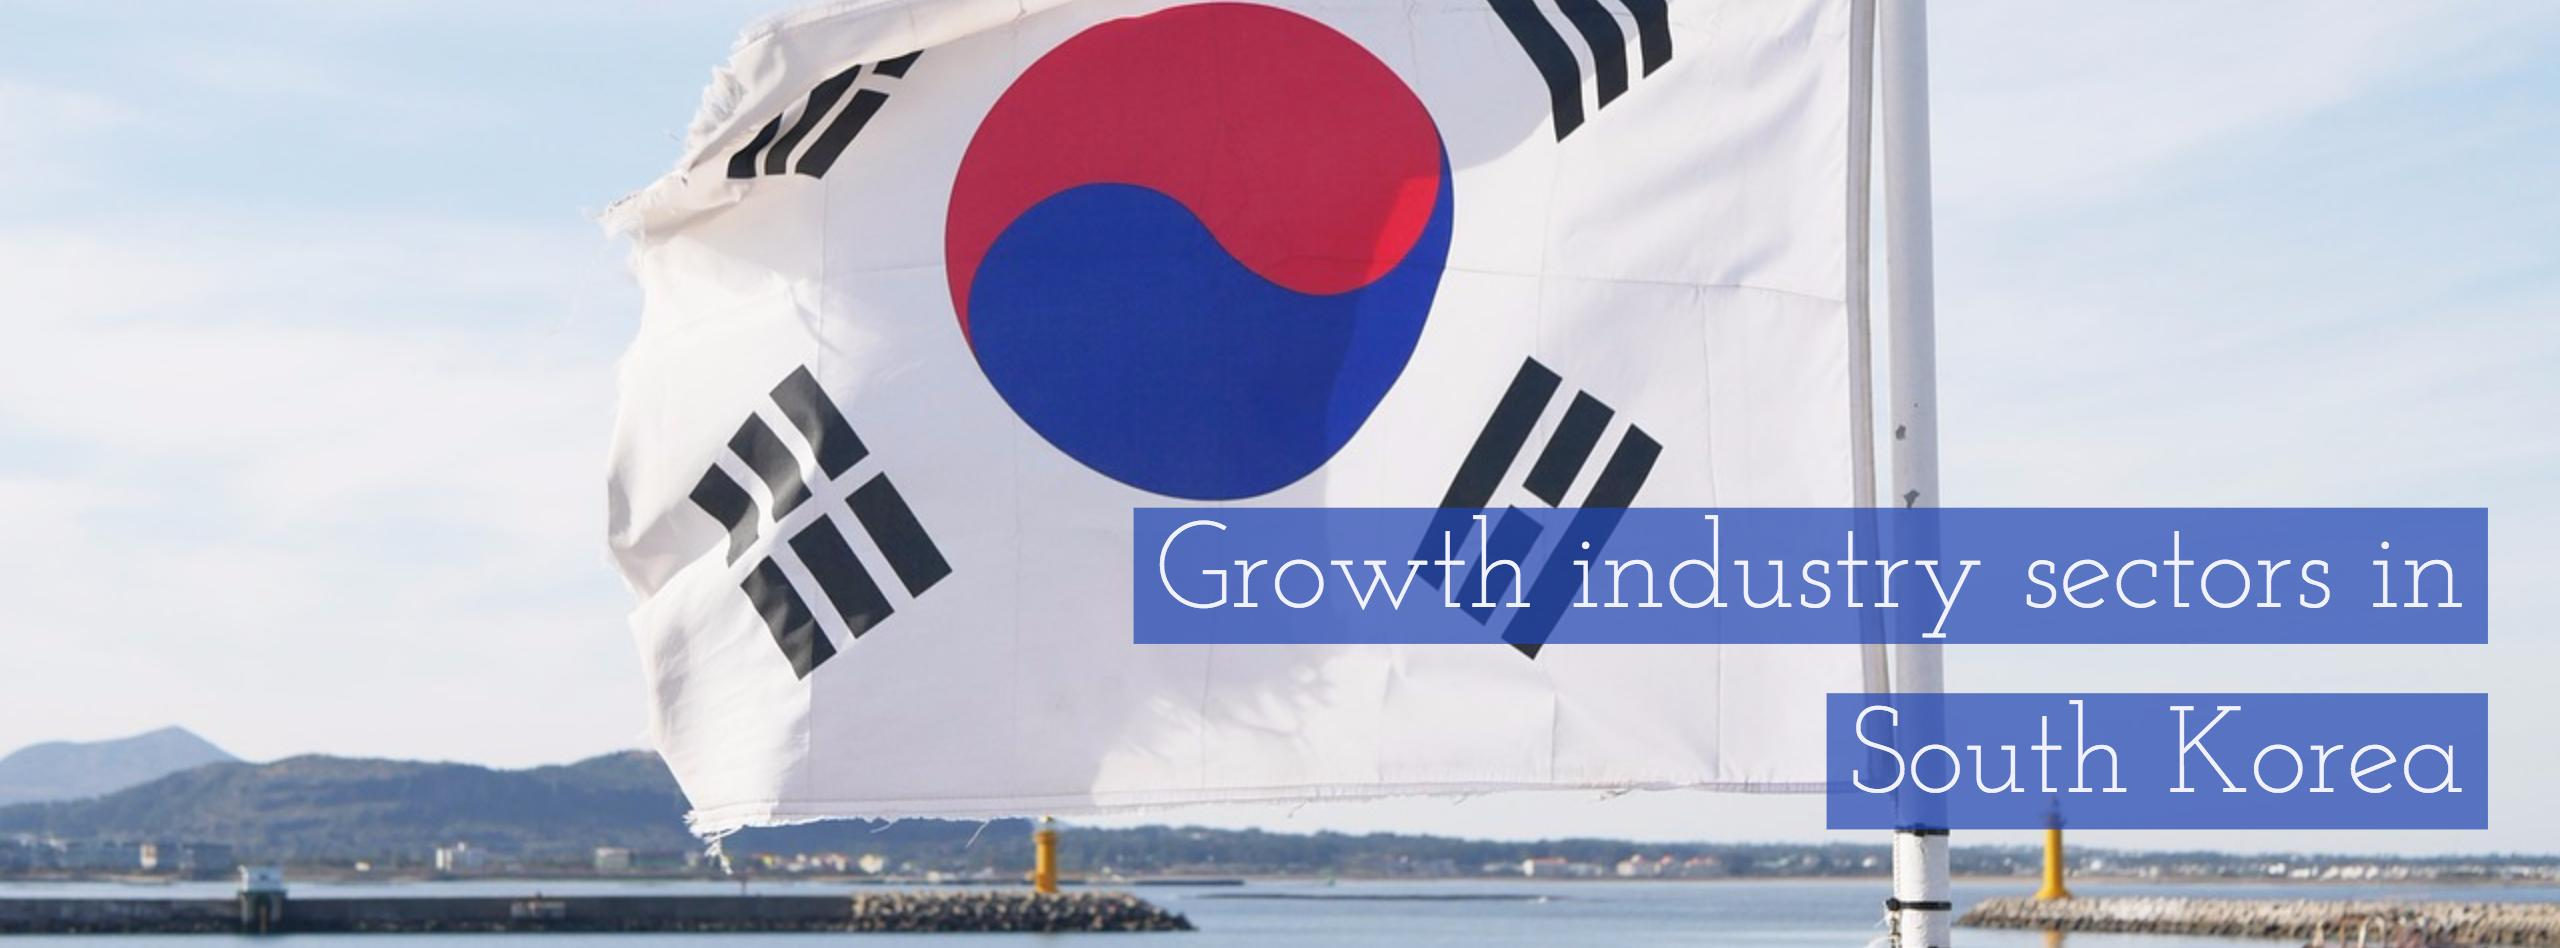 South Korea Market, Growth industry sectors in South Korea: Insight from a regional expert, export to South Korea, South Korea economy